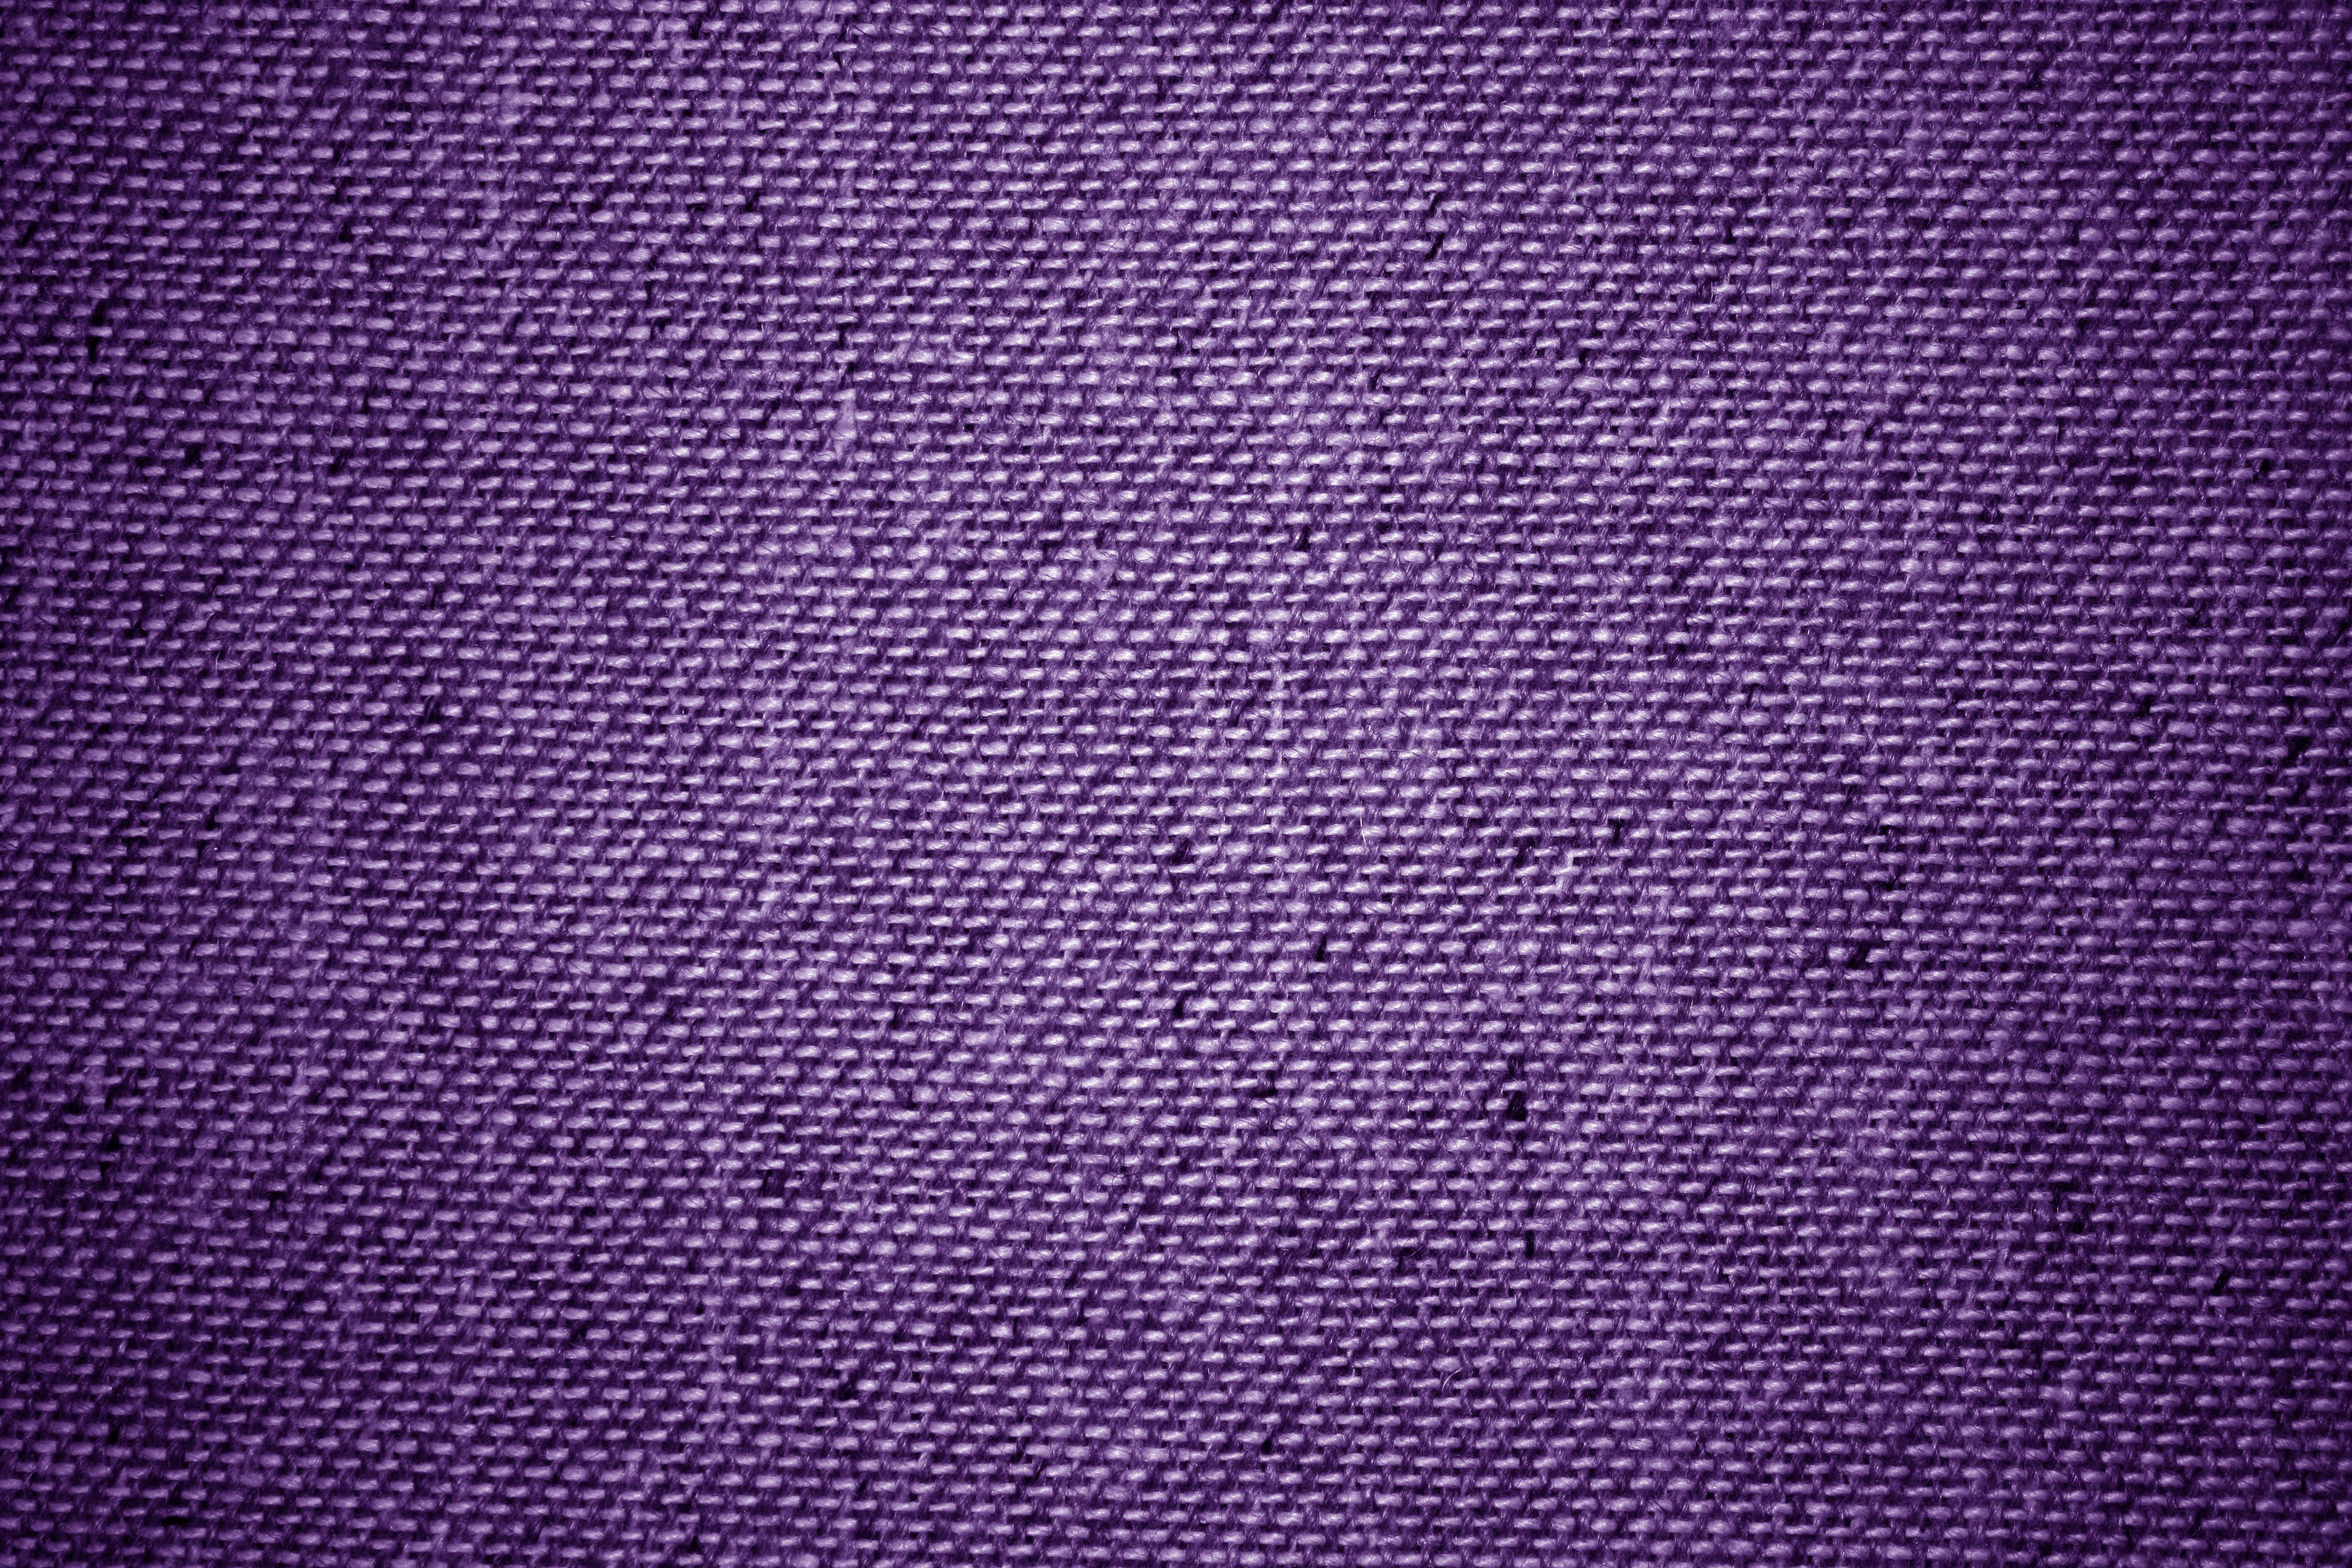 Pink fabric texture free high resolution photo dimensions 3888 - Free Fabric Textures Purple Upholstery Fabric Close Up Texture Free High Resolution Photo